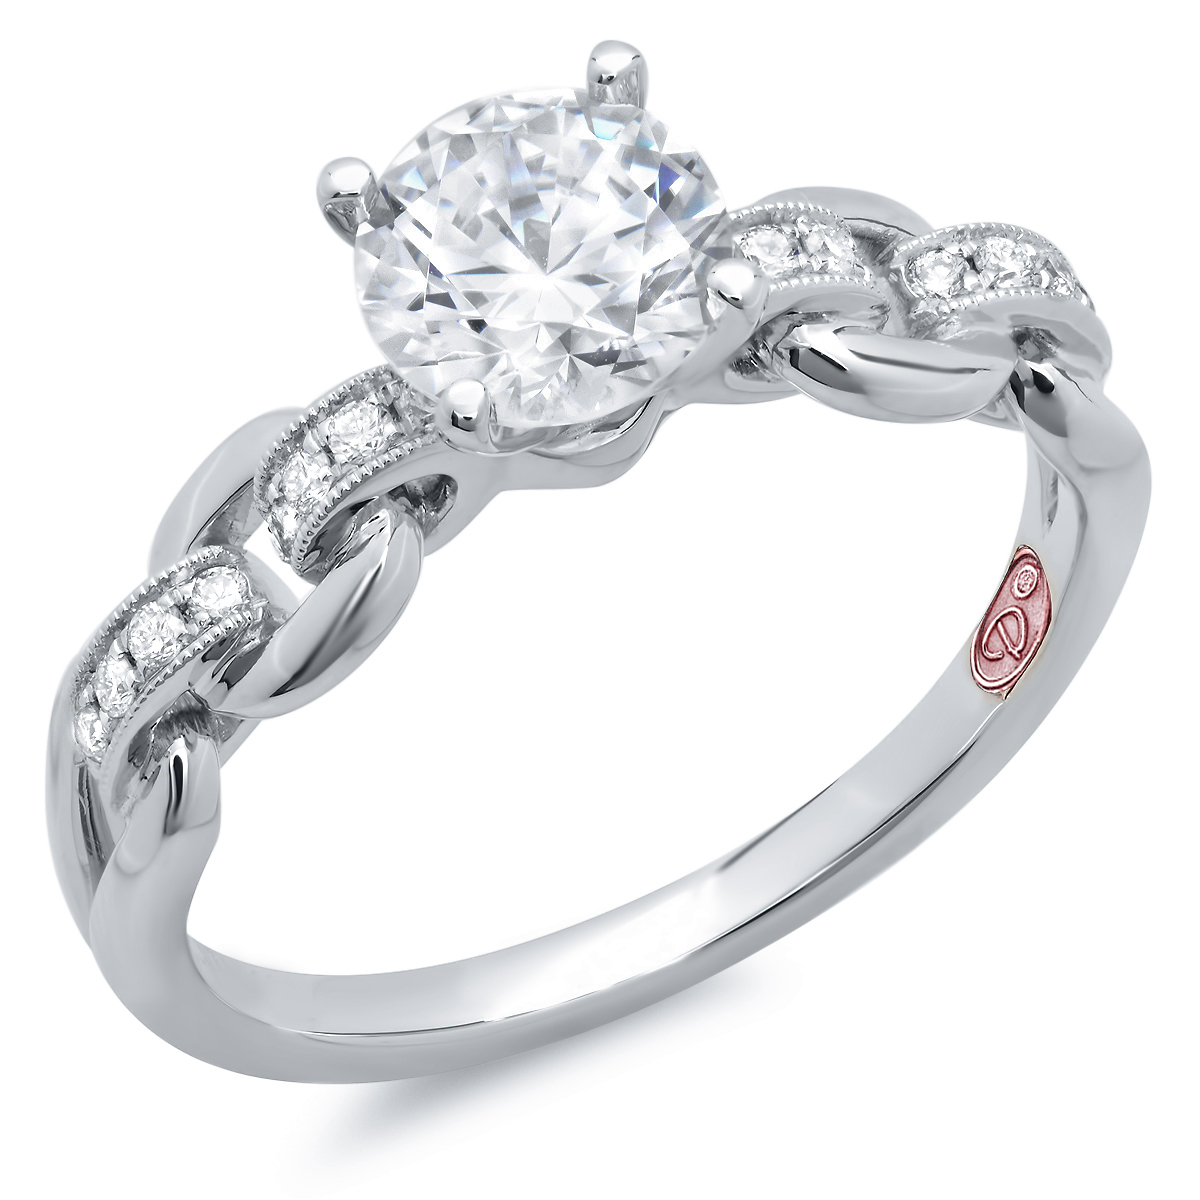 Designer Engagement Rings DW7610